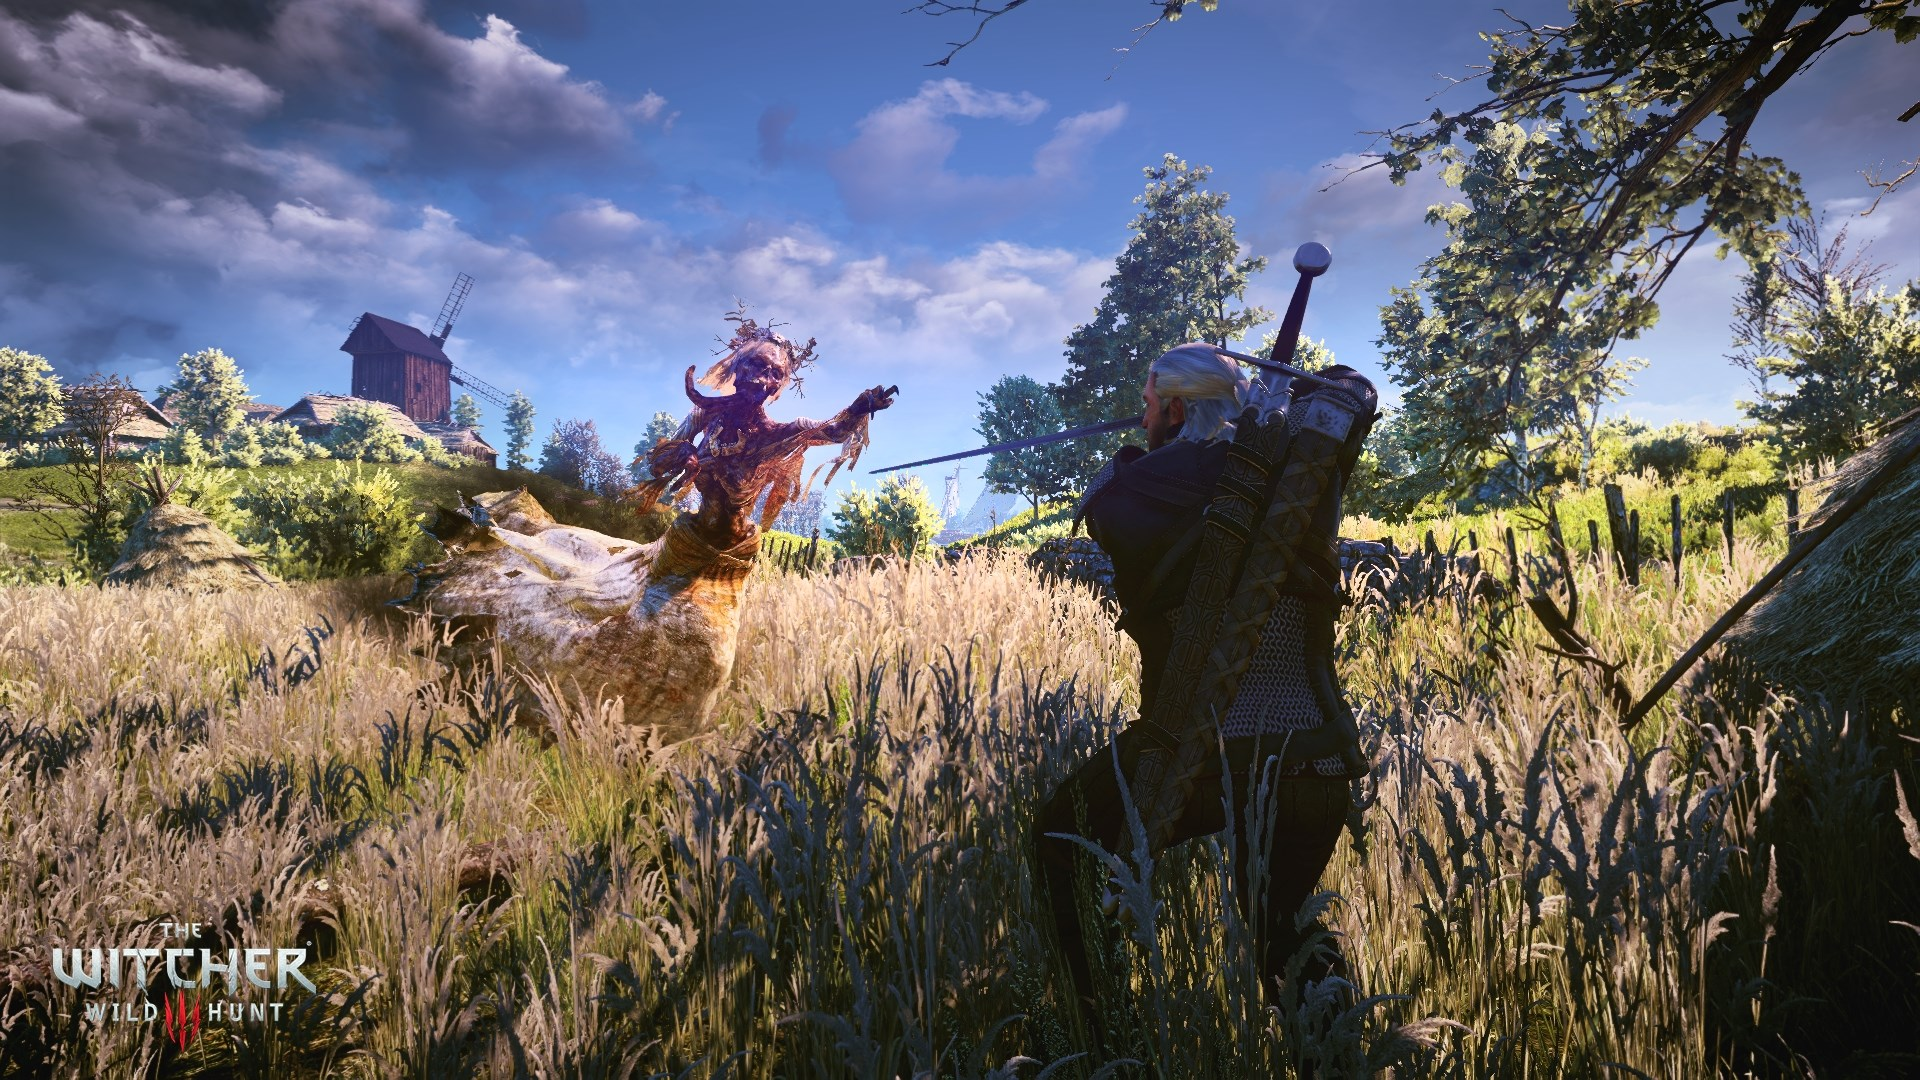 Aparecen 12 minutos de Gameplay de The Witcher 3: Wild Hunt [Video]